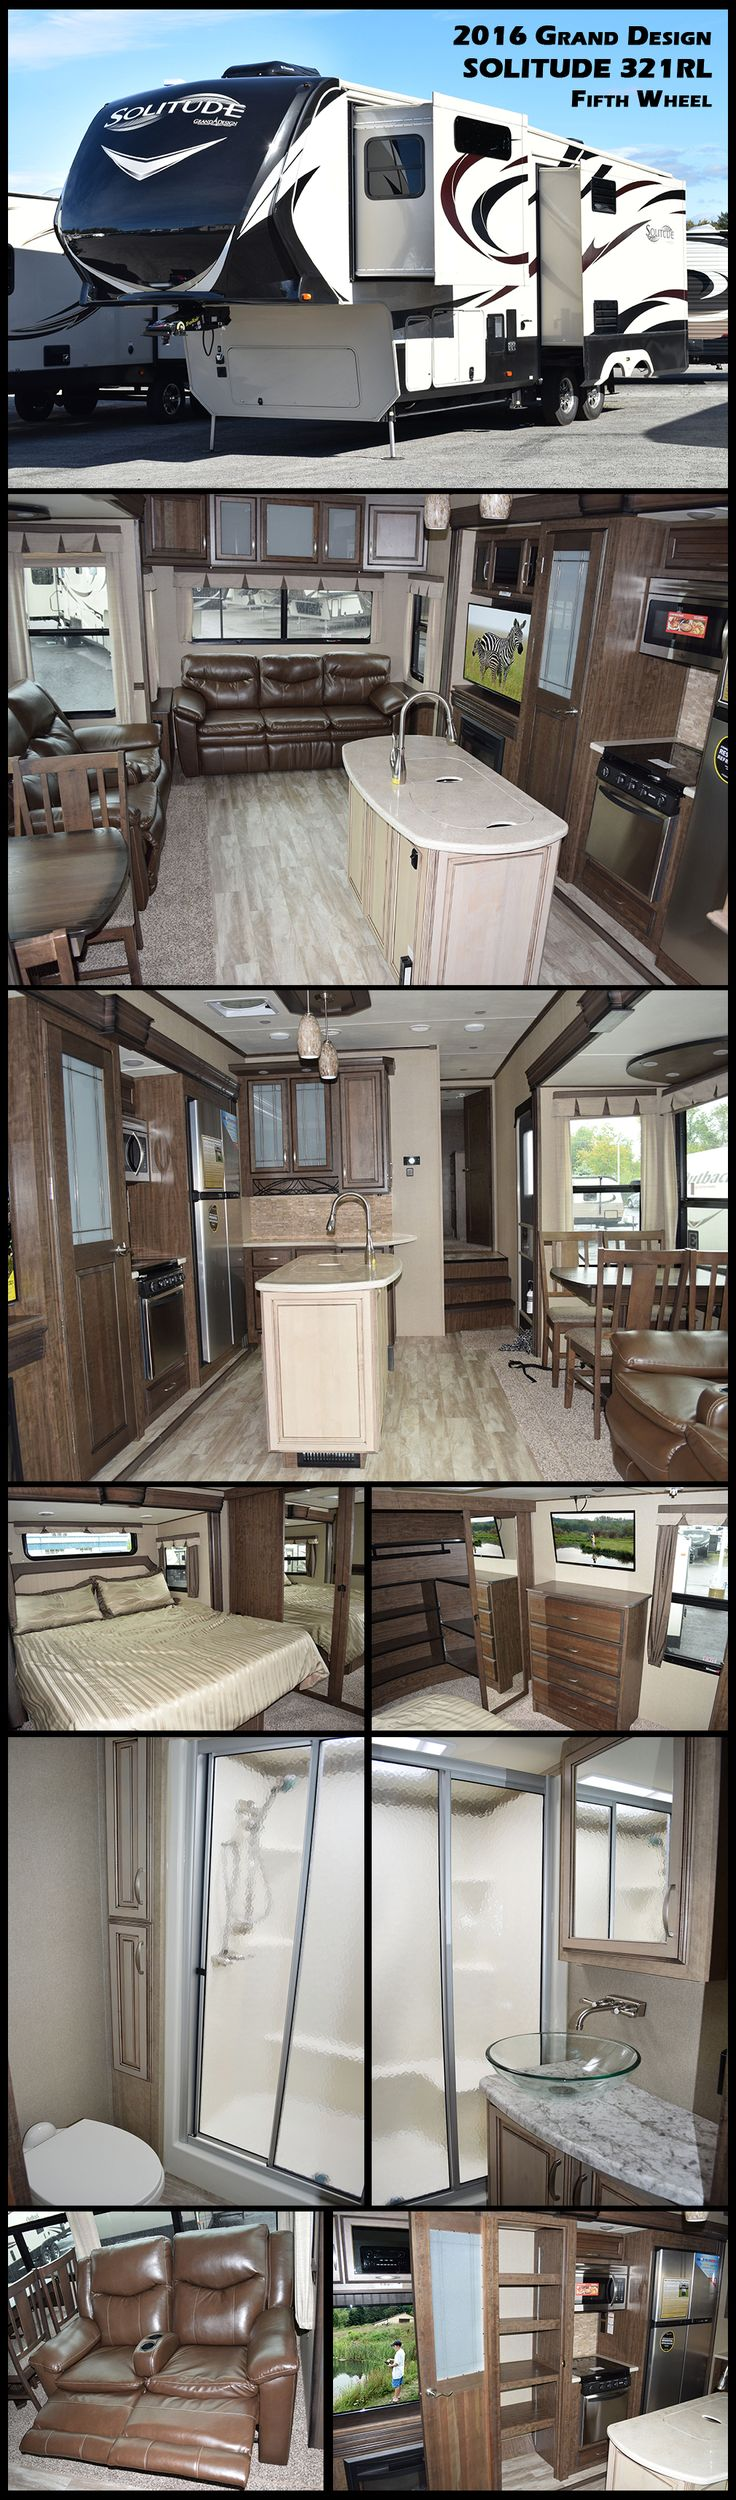 17 Best Images About Fifth Wheel On Pinterest Cozy Fireplace Fifth Wheel And Prime Time